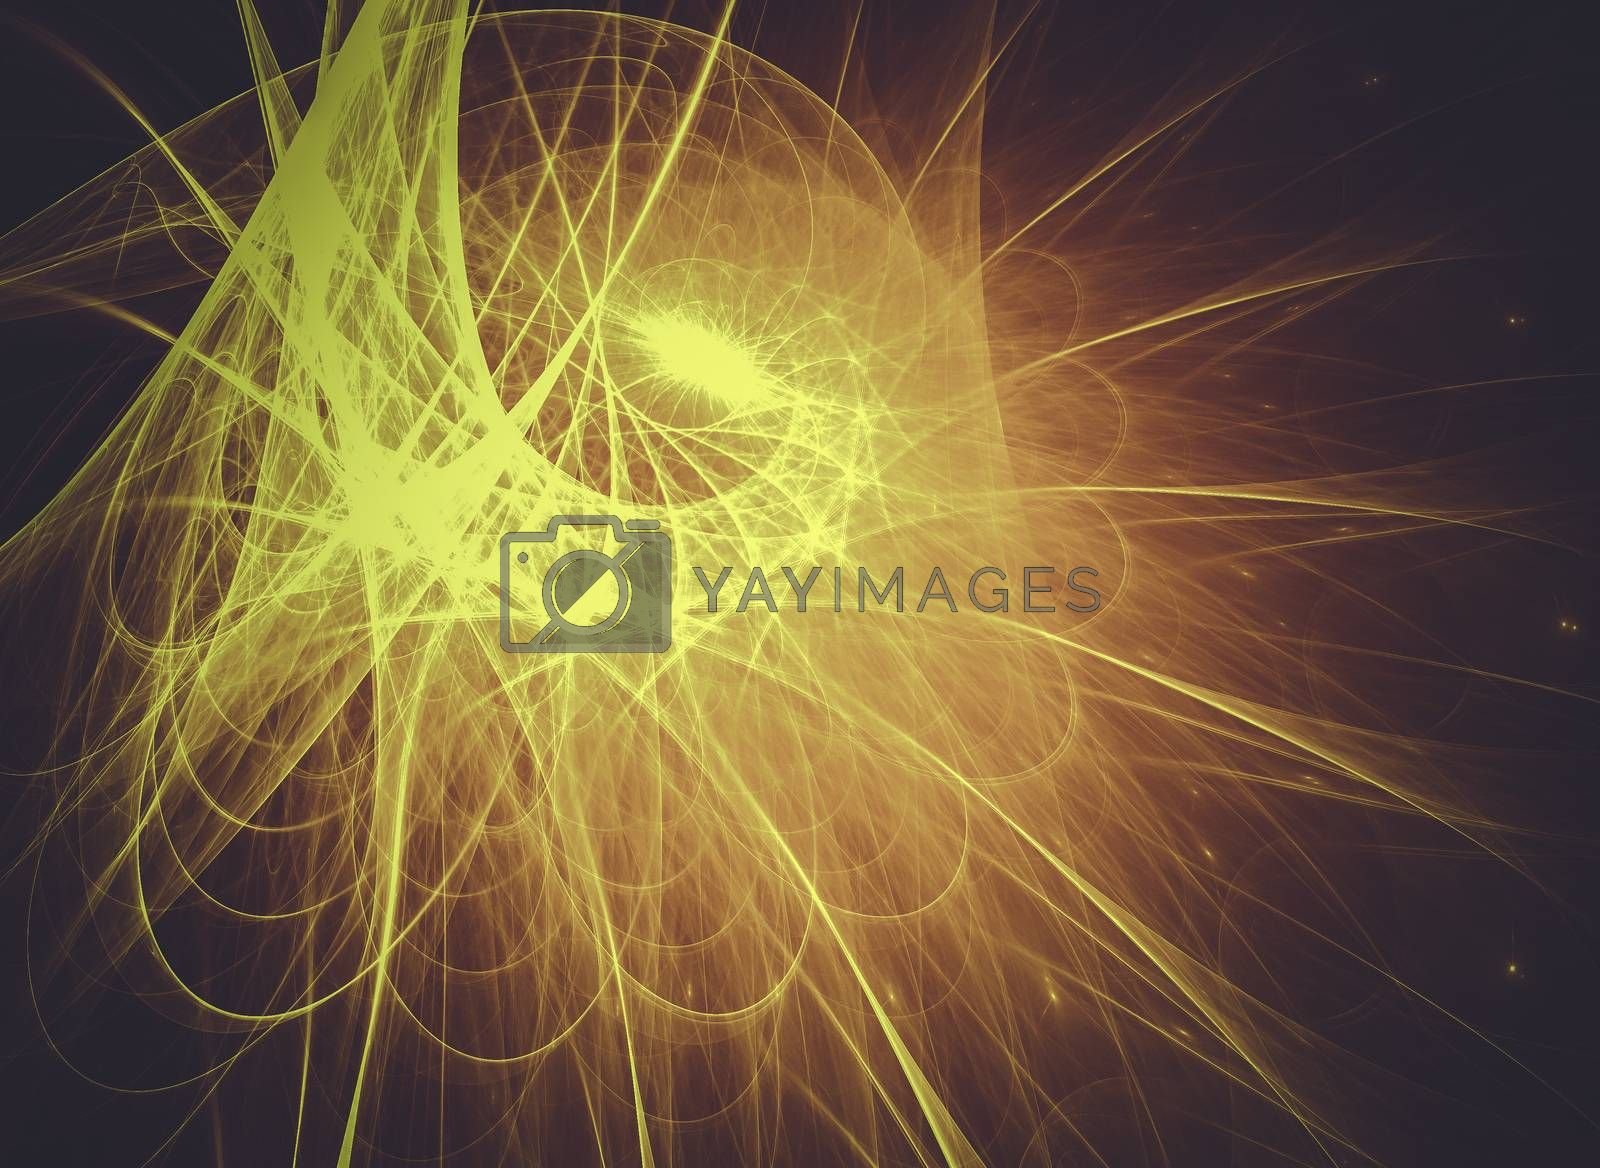 Abstract sun, Creative design background, fractal styles with co by FernandoCortes